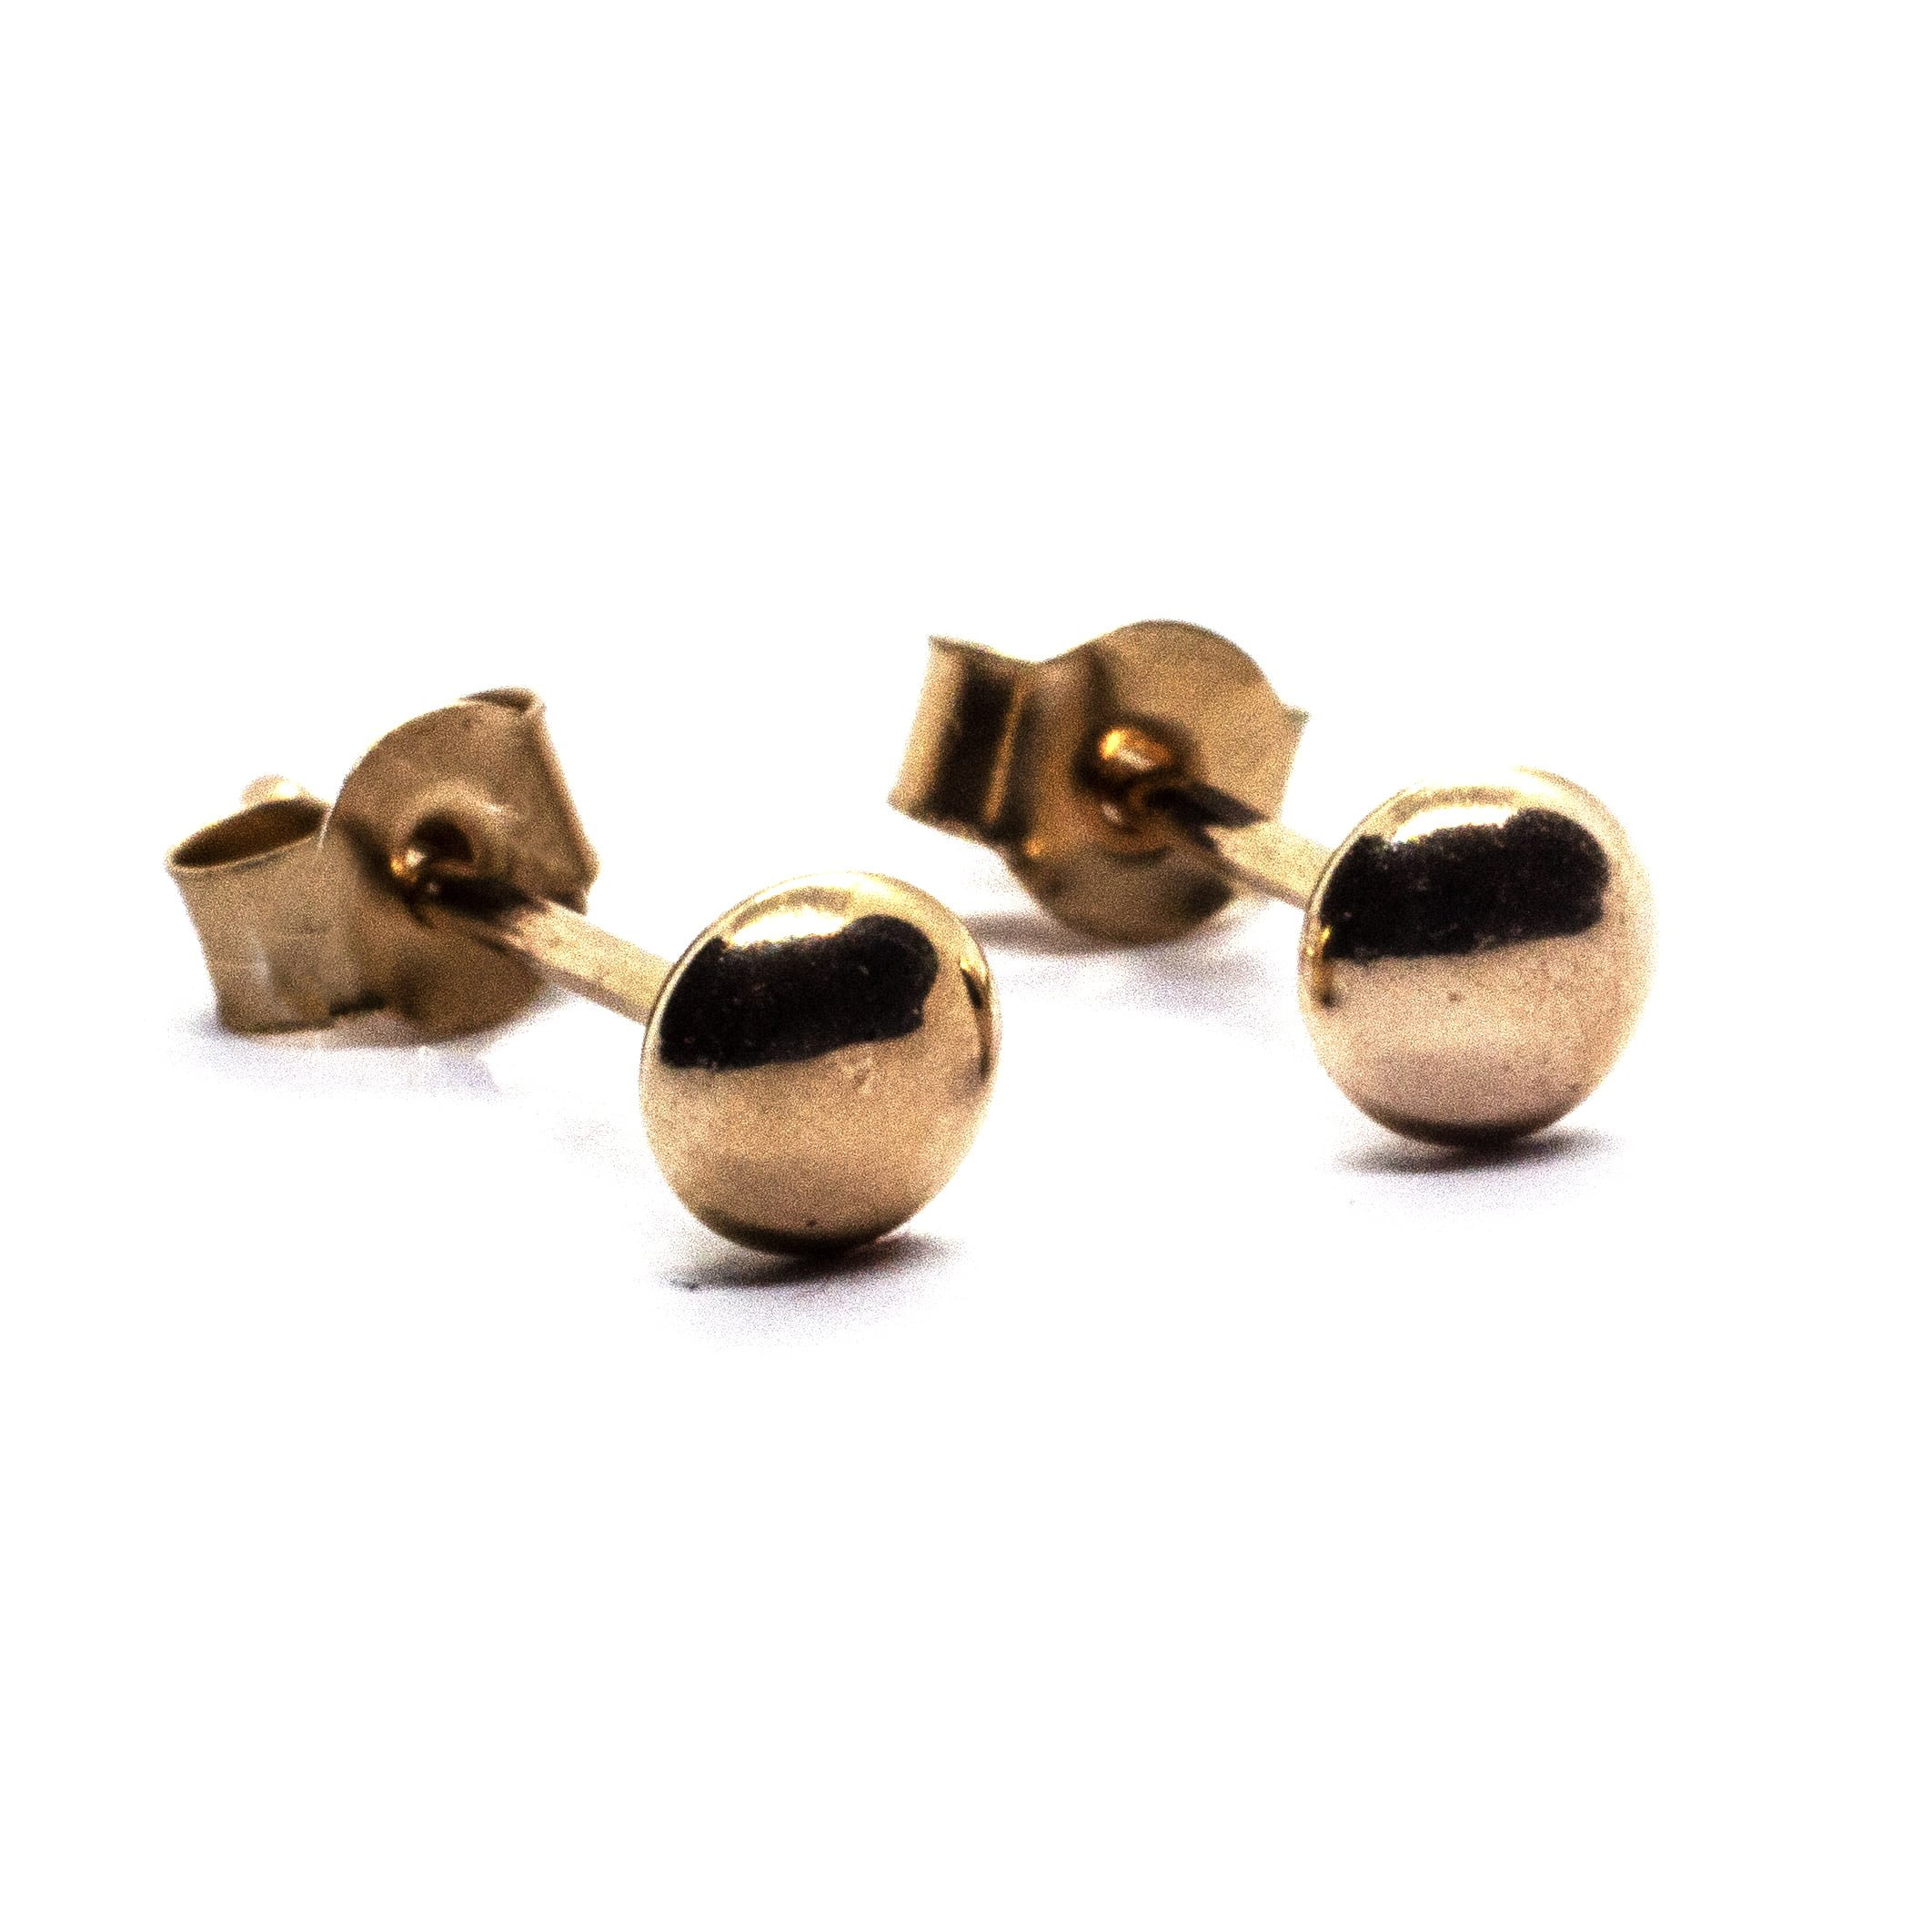 3mm gold bouton earring